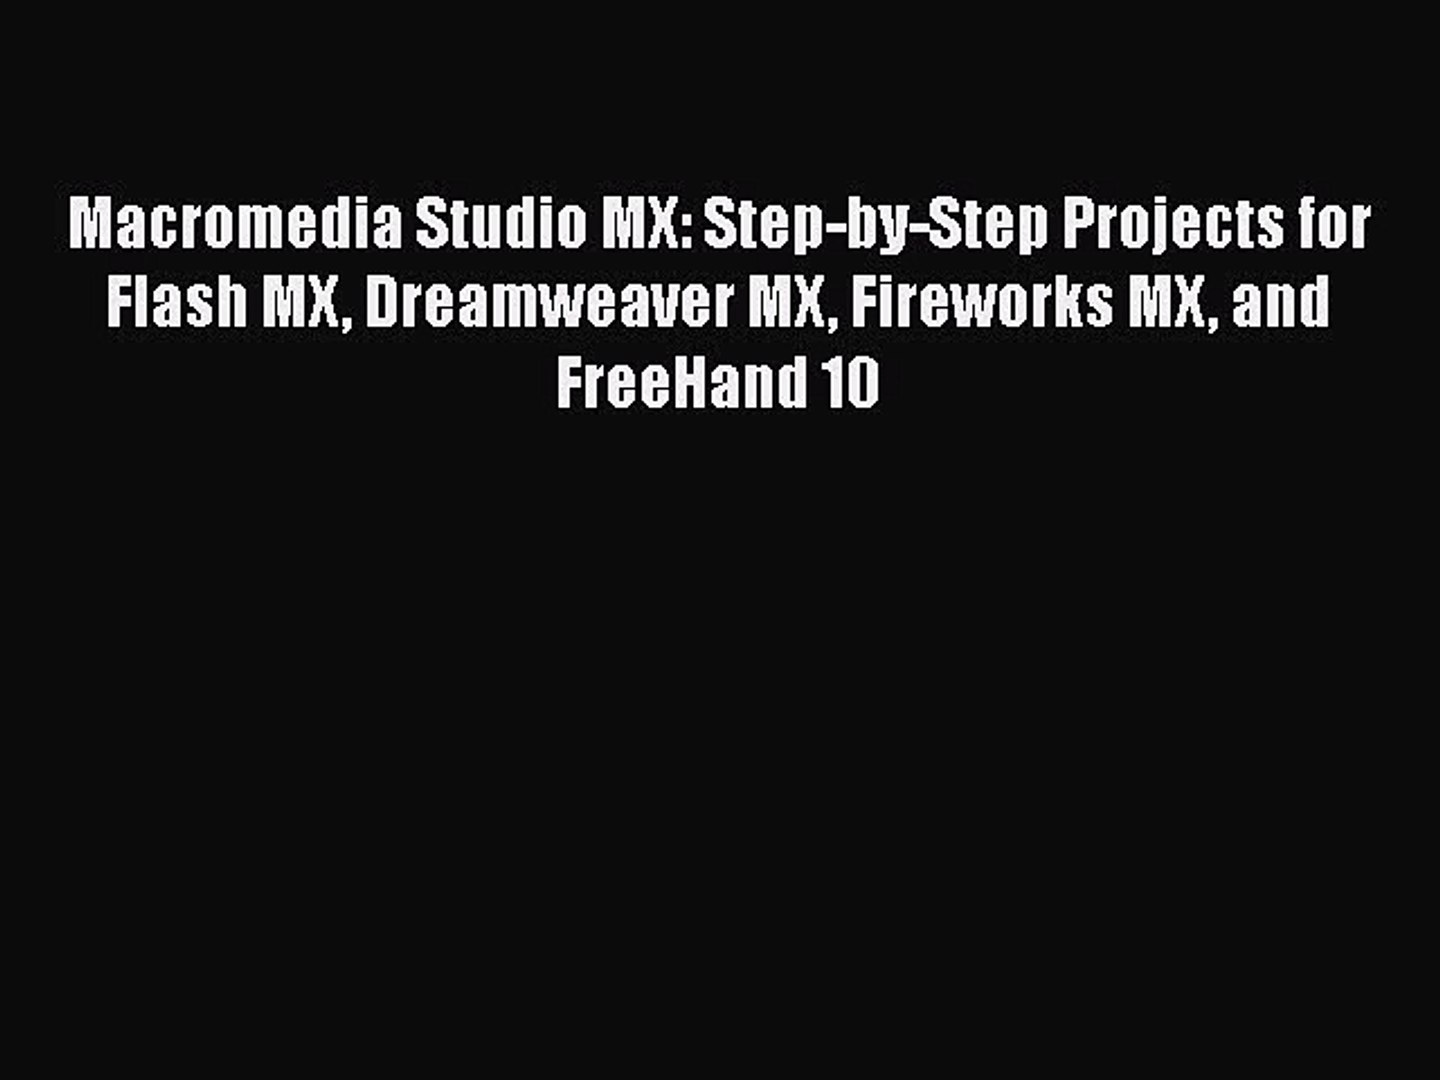 and FreeHand 10 Dreamweaver MX Macromedia Studio MX: Step-by-Step Projects for Flash MX Fireworks MX